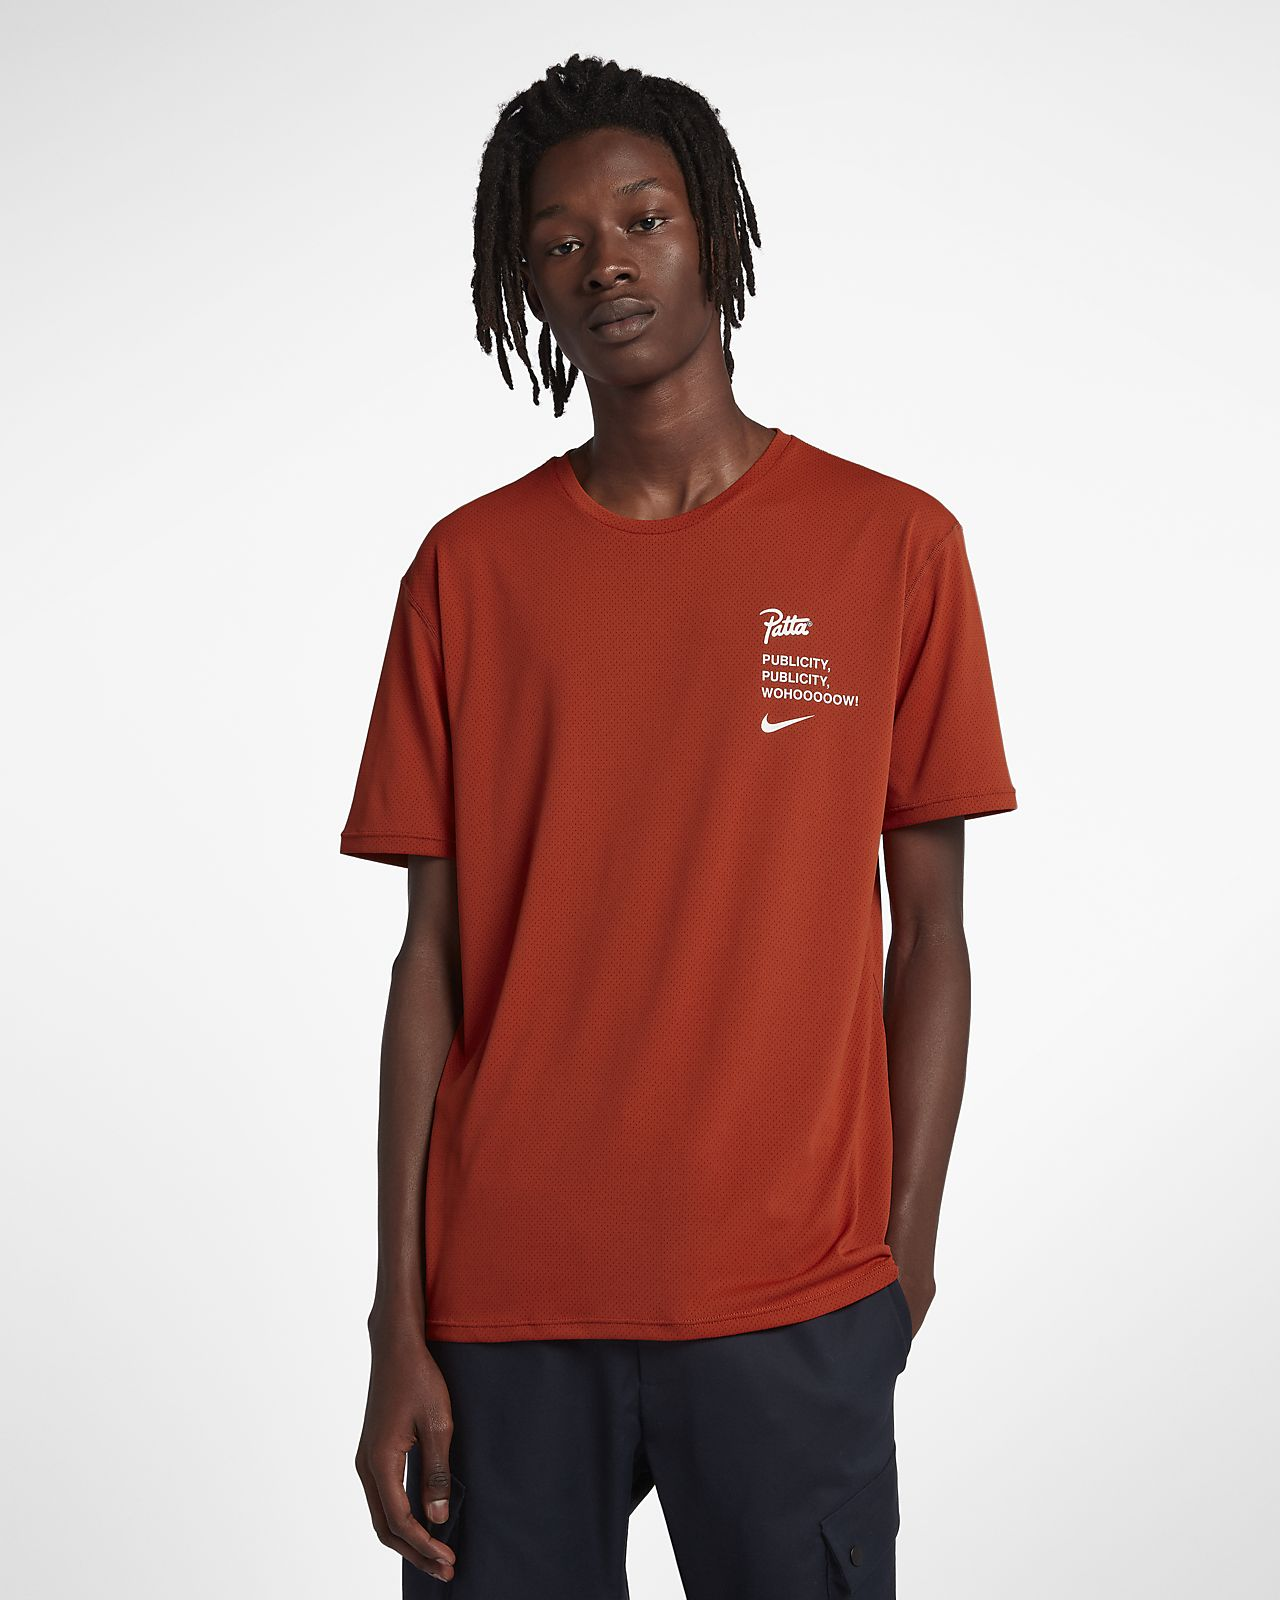 Nike x Patta Men's Short Sleeve Top